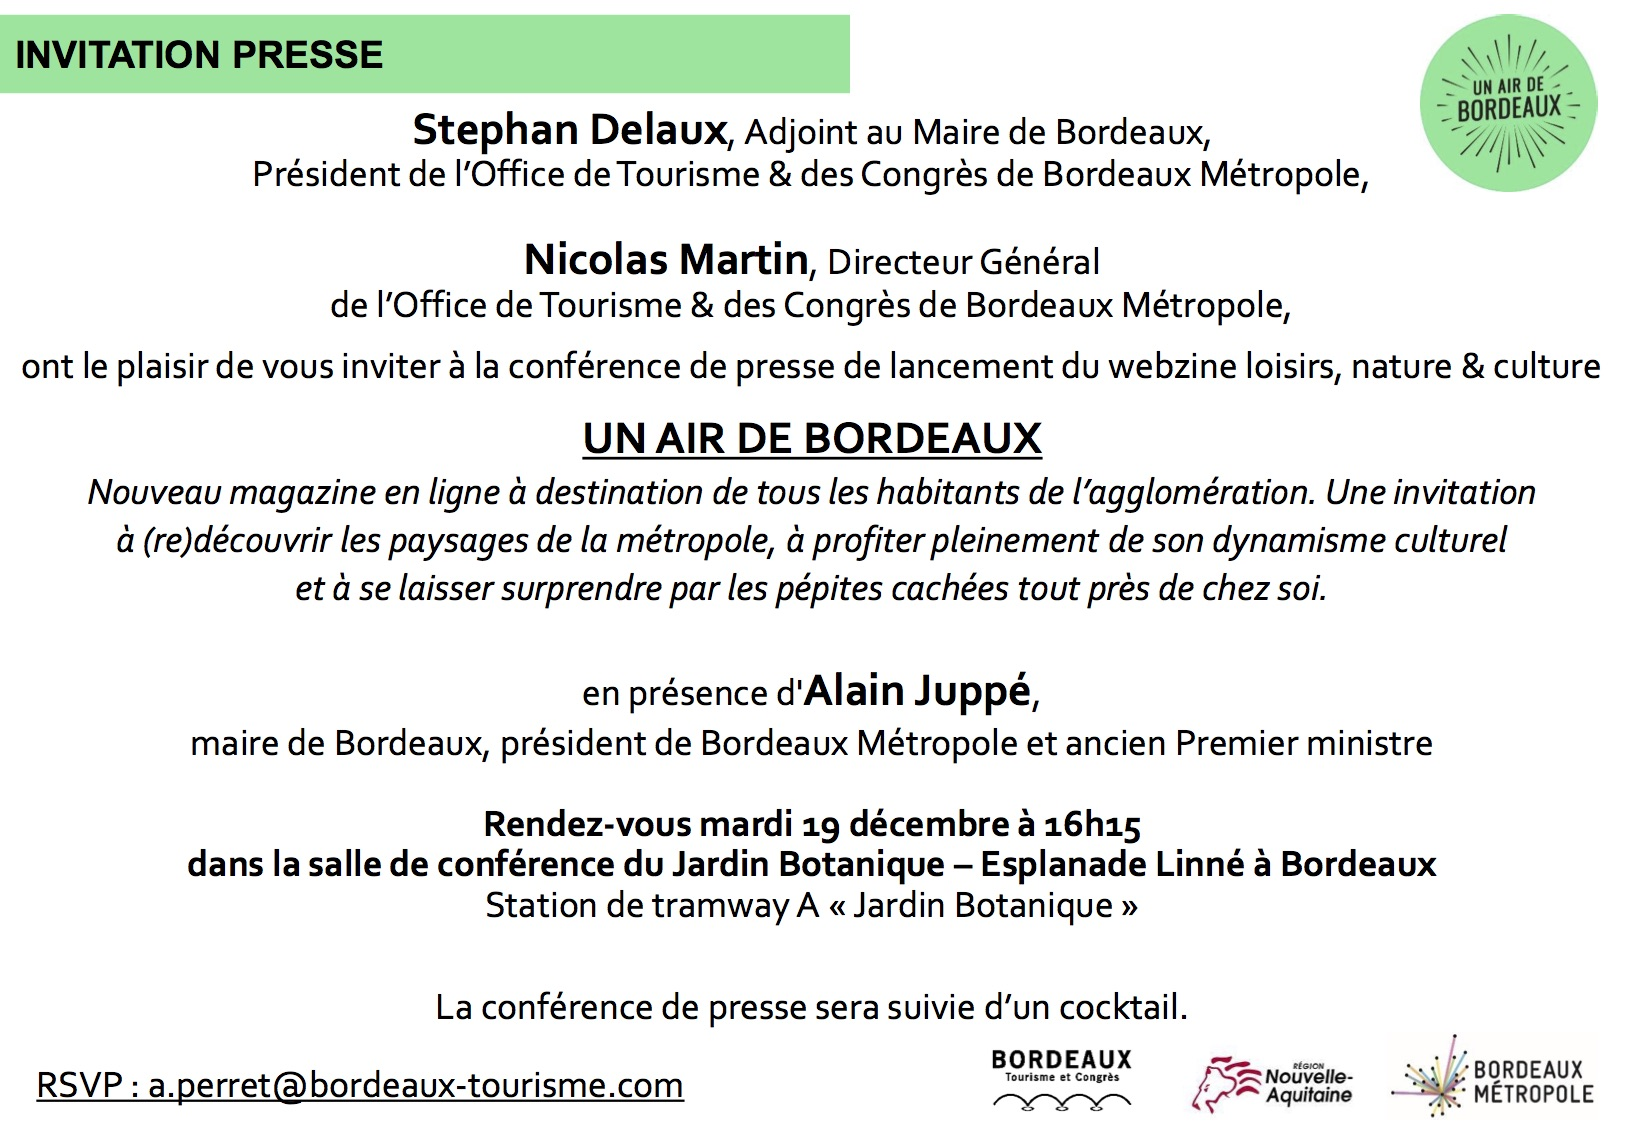 Invitation presse : lancement webzine 'Un Air de Bordeaux'